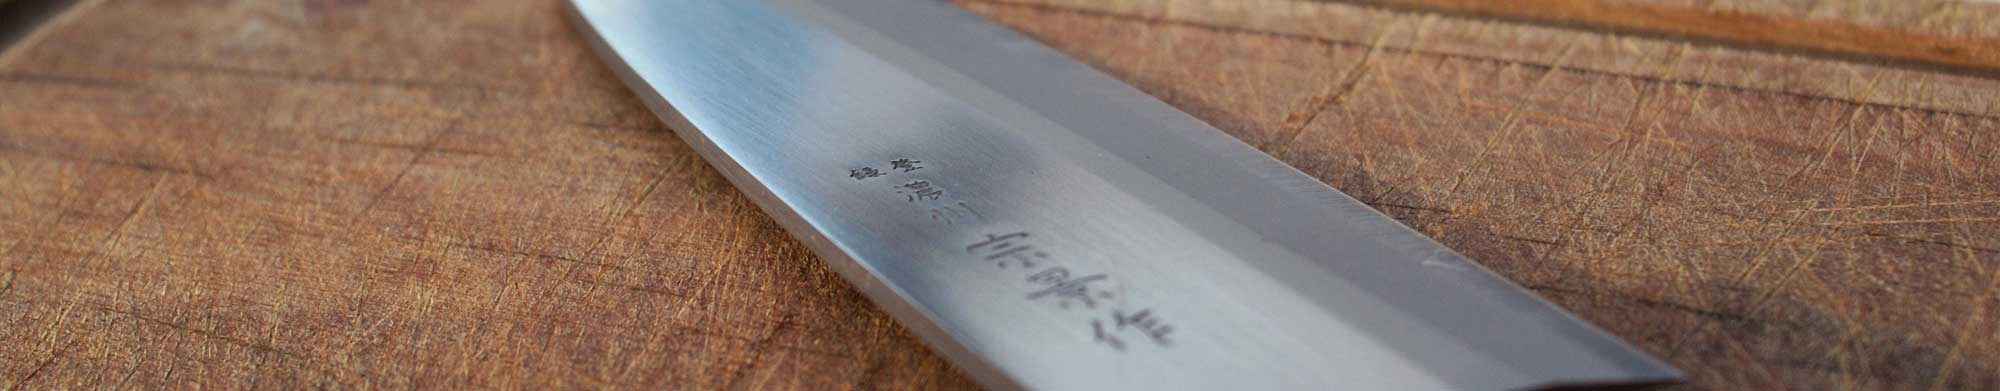 knives made in Japan